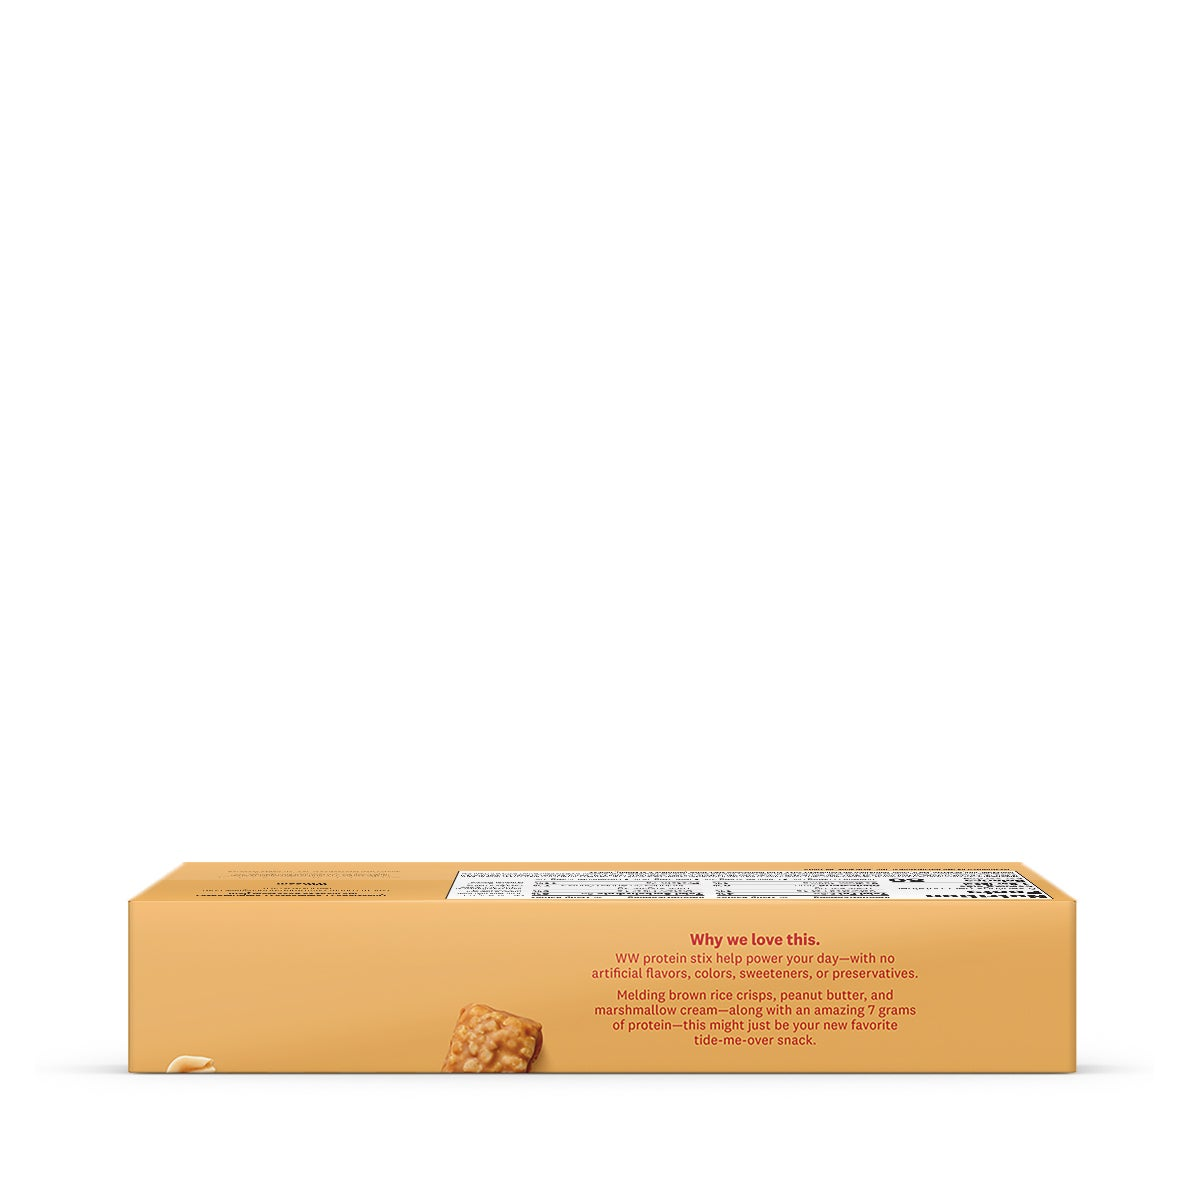 Peanut Butter Protein Stix - side of box 2